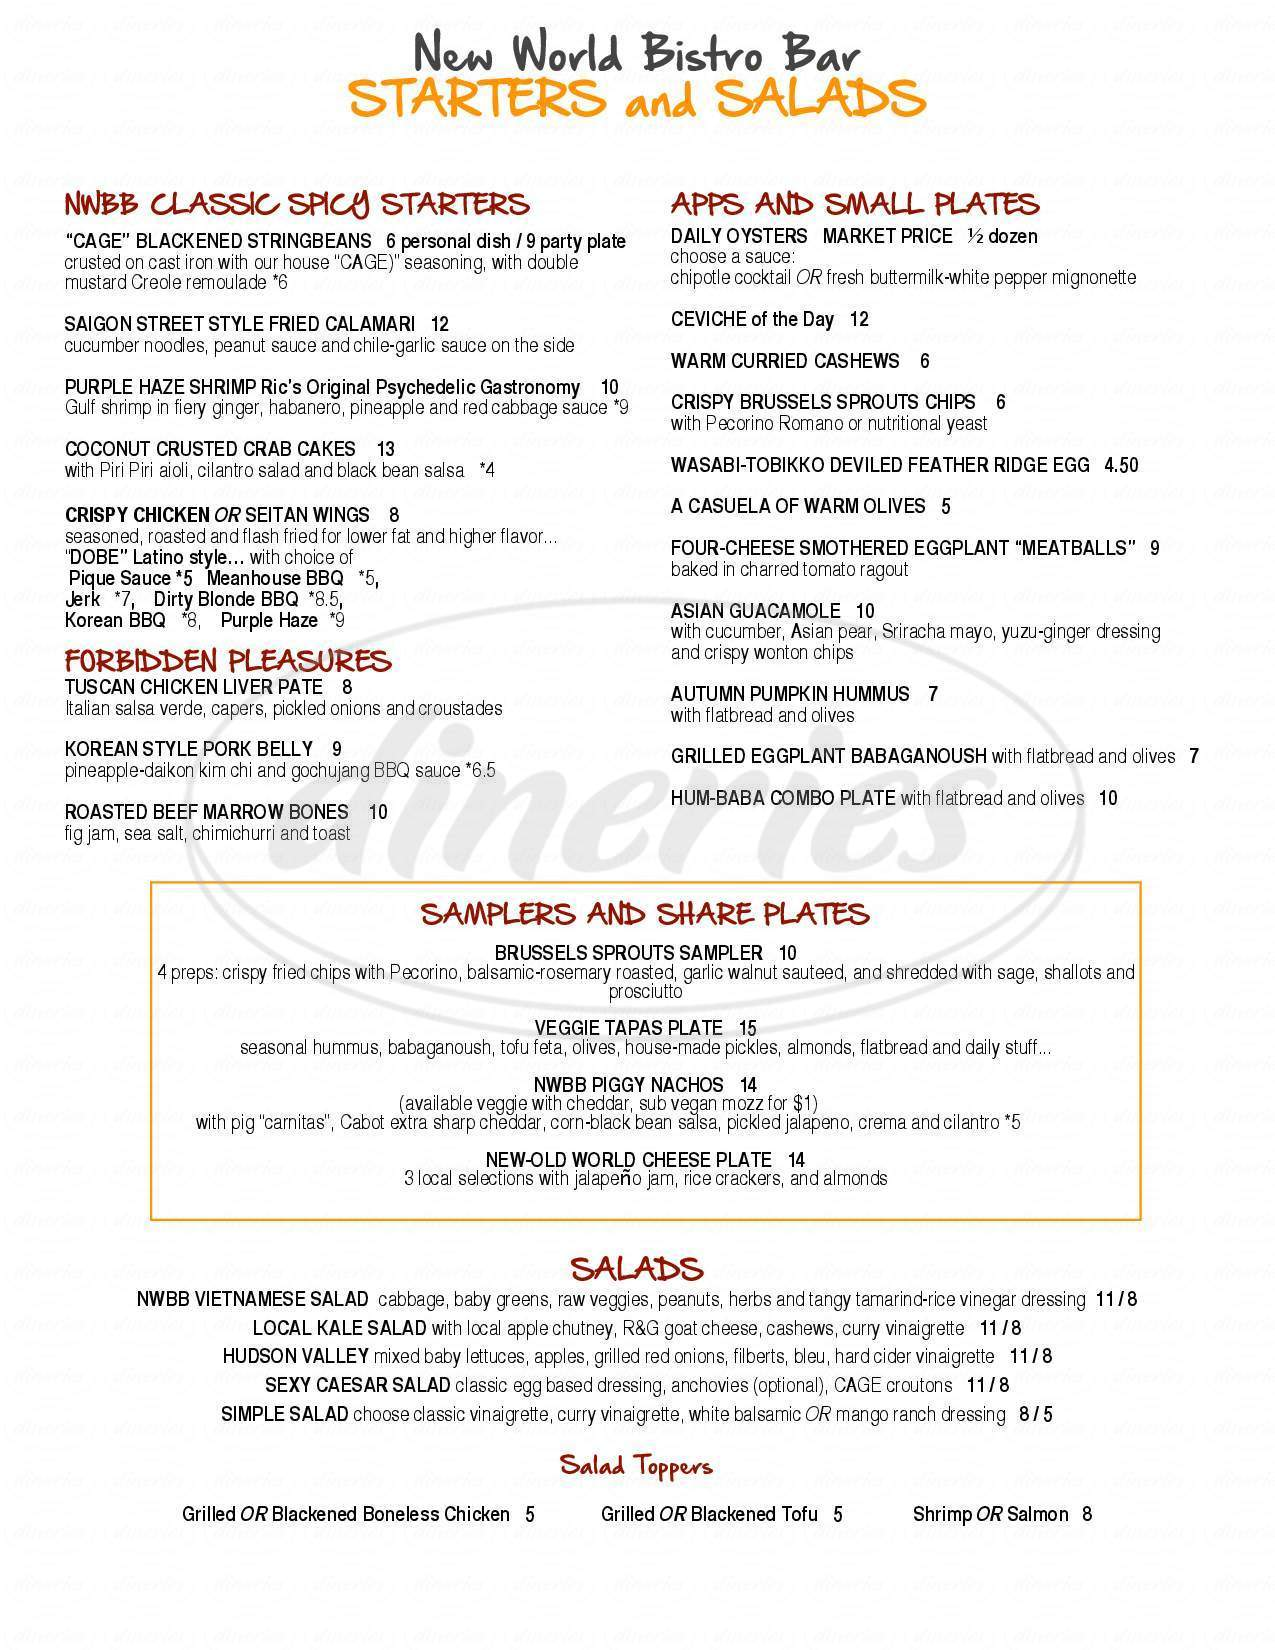 Big menu for New World Bistro Bar, Albany